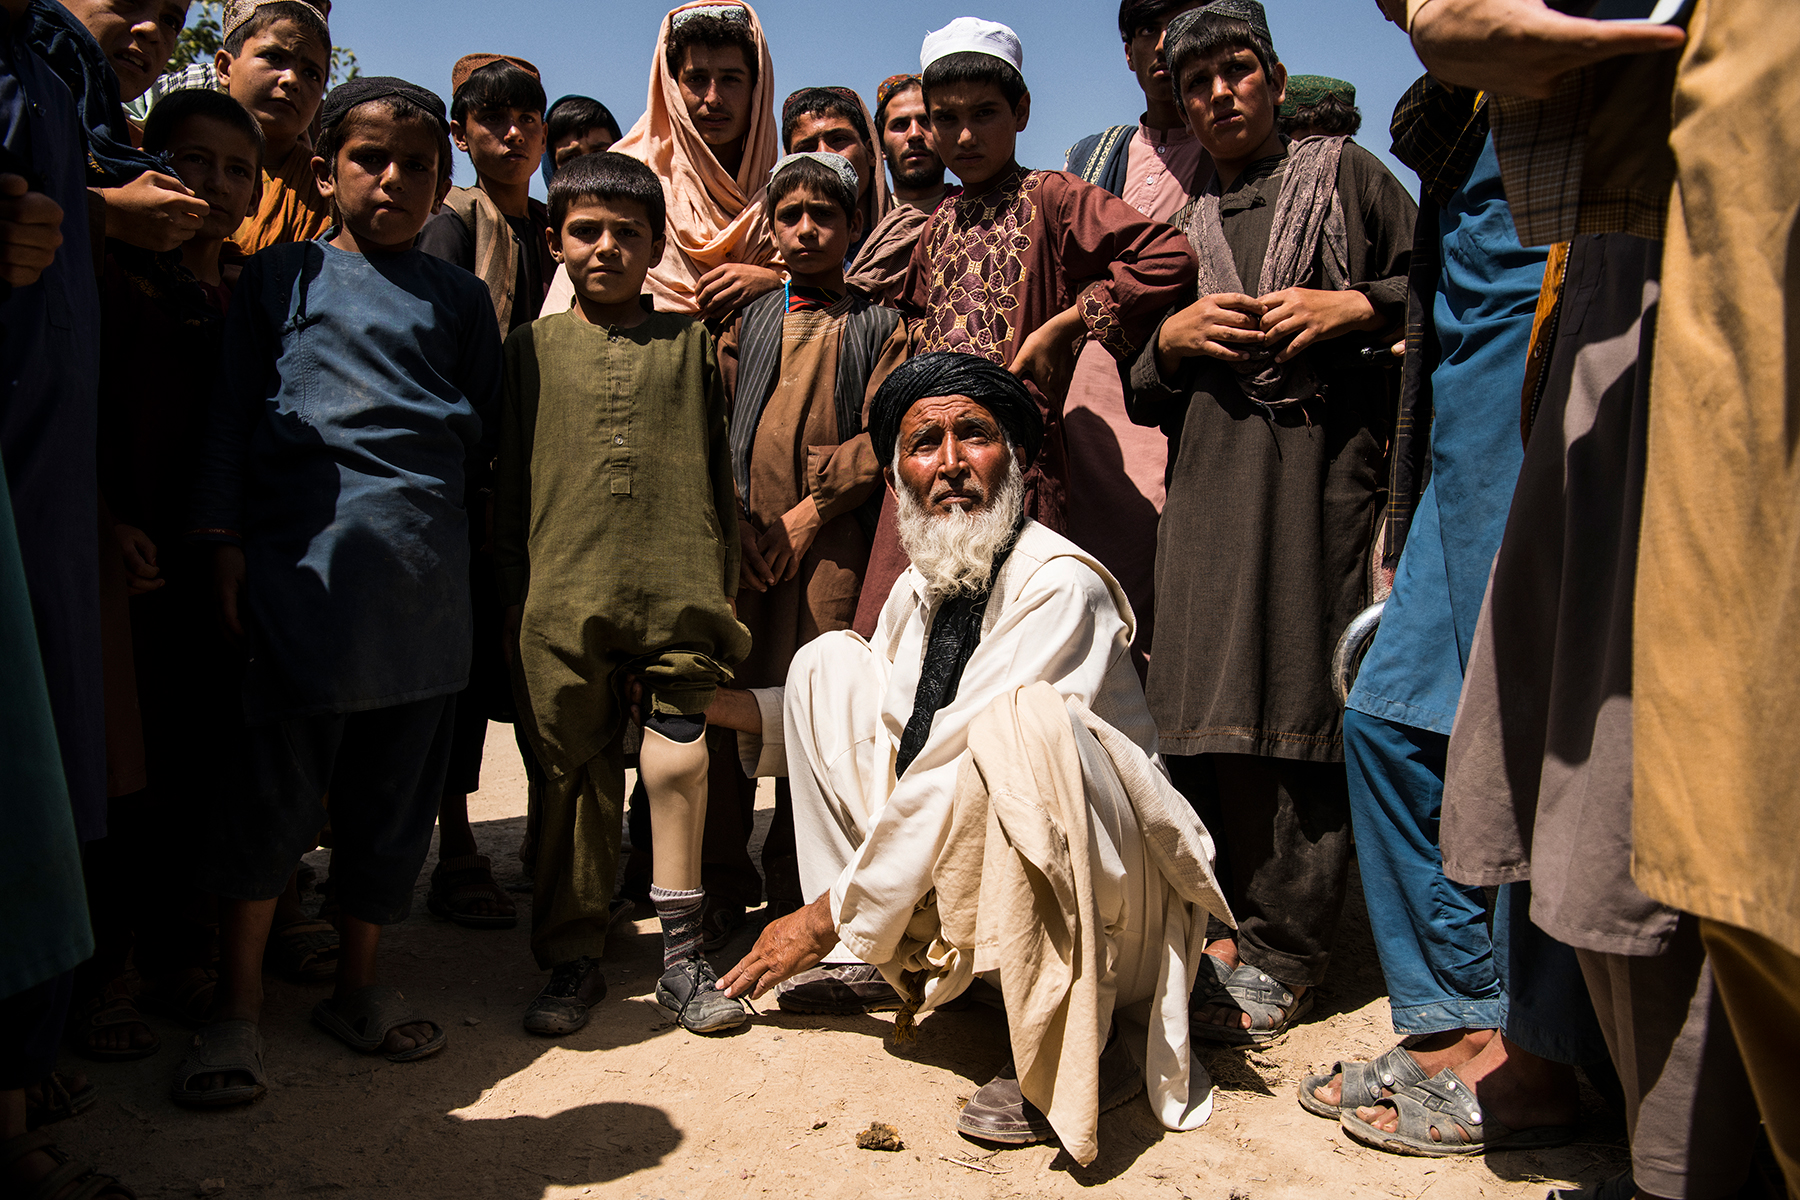 A father with his son, who lost a leg to what he says was a U.S. airstrike (check this) in the Taliban-controlled village of Qala Amir, Tangi Valley, Wardak province.The Tangi Valley and it's numerous villages, including Qala Amir, pictured, in Sayedabad district, Wardak province, has been under the control of the Taliban for several years following the withdrawal of American forces who occupied a small base just outside Qala Amir and is, since American forces curtailed their use of air power and special forces raids as agreed in the February 29 Doha Agreement with the Taliban, as much at peace as it has been probably since the insurgency began in the mid-2000s. The Tangi Valley saw extremely heavy fighting in the years that control was contested, but, once the U.S. withdrew from Tangi in 2014 and Afghan government forces were unable to hold it the only way it could be threatened was through night raids and air strikes, which occurred especially regularly in 2018 and 2019 as the Americans attempted to pressure the Taliban at the negotiating table. Wardak province, which neighbours Kabul to the southwest, has been a particularly violent province since then. Now, the majority of the province is under the control of the Taliban, with the government holding on to the capital, Maidan Shahr, some district centres and nominally, Highway 1 which passes lengthways through the province between Kabul and Ghazni province.